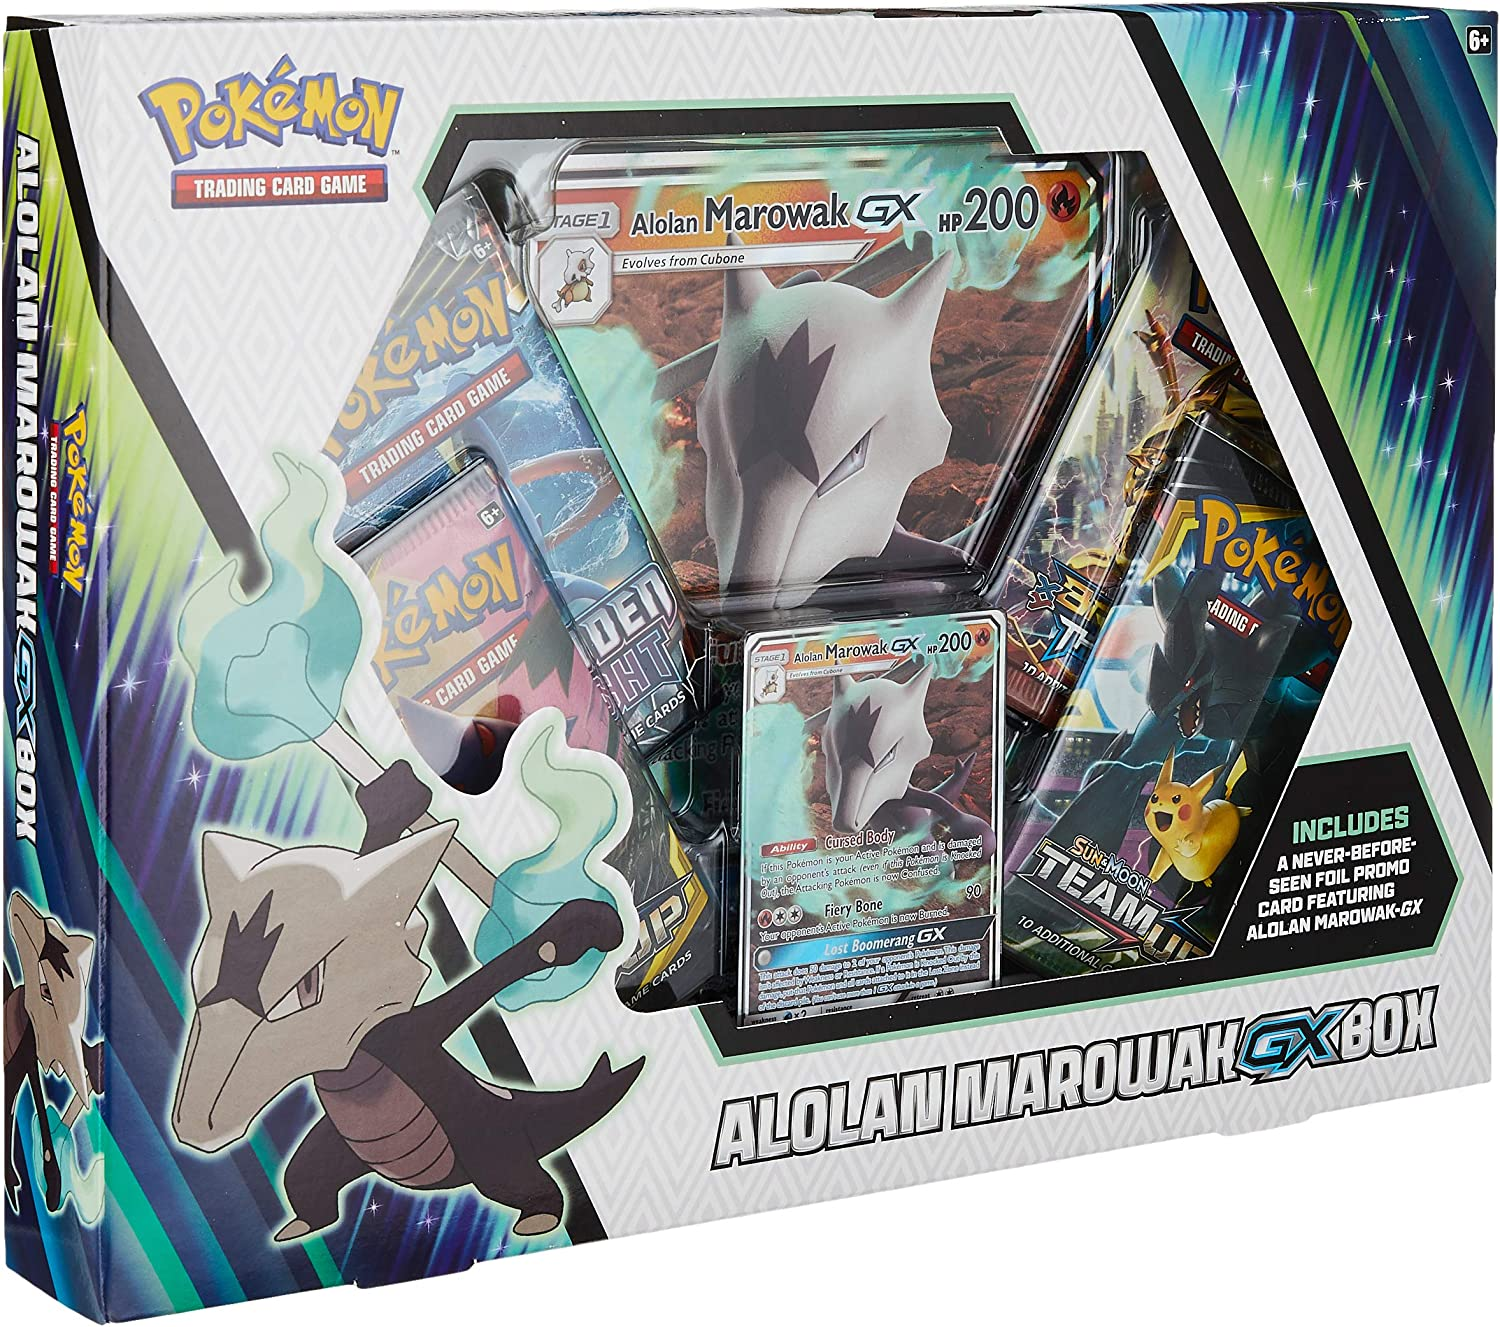 Pokemon Cards TCG: Alolan Marowak-Gx Box | 4 Booster Pack | A Foil Promo Card | A Foil Oversize Card | Genuine Cards